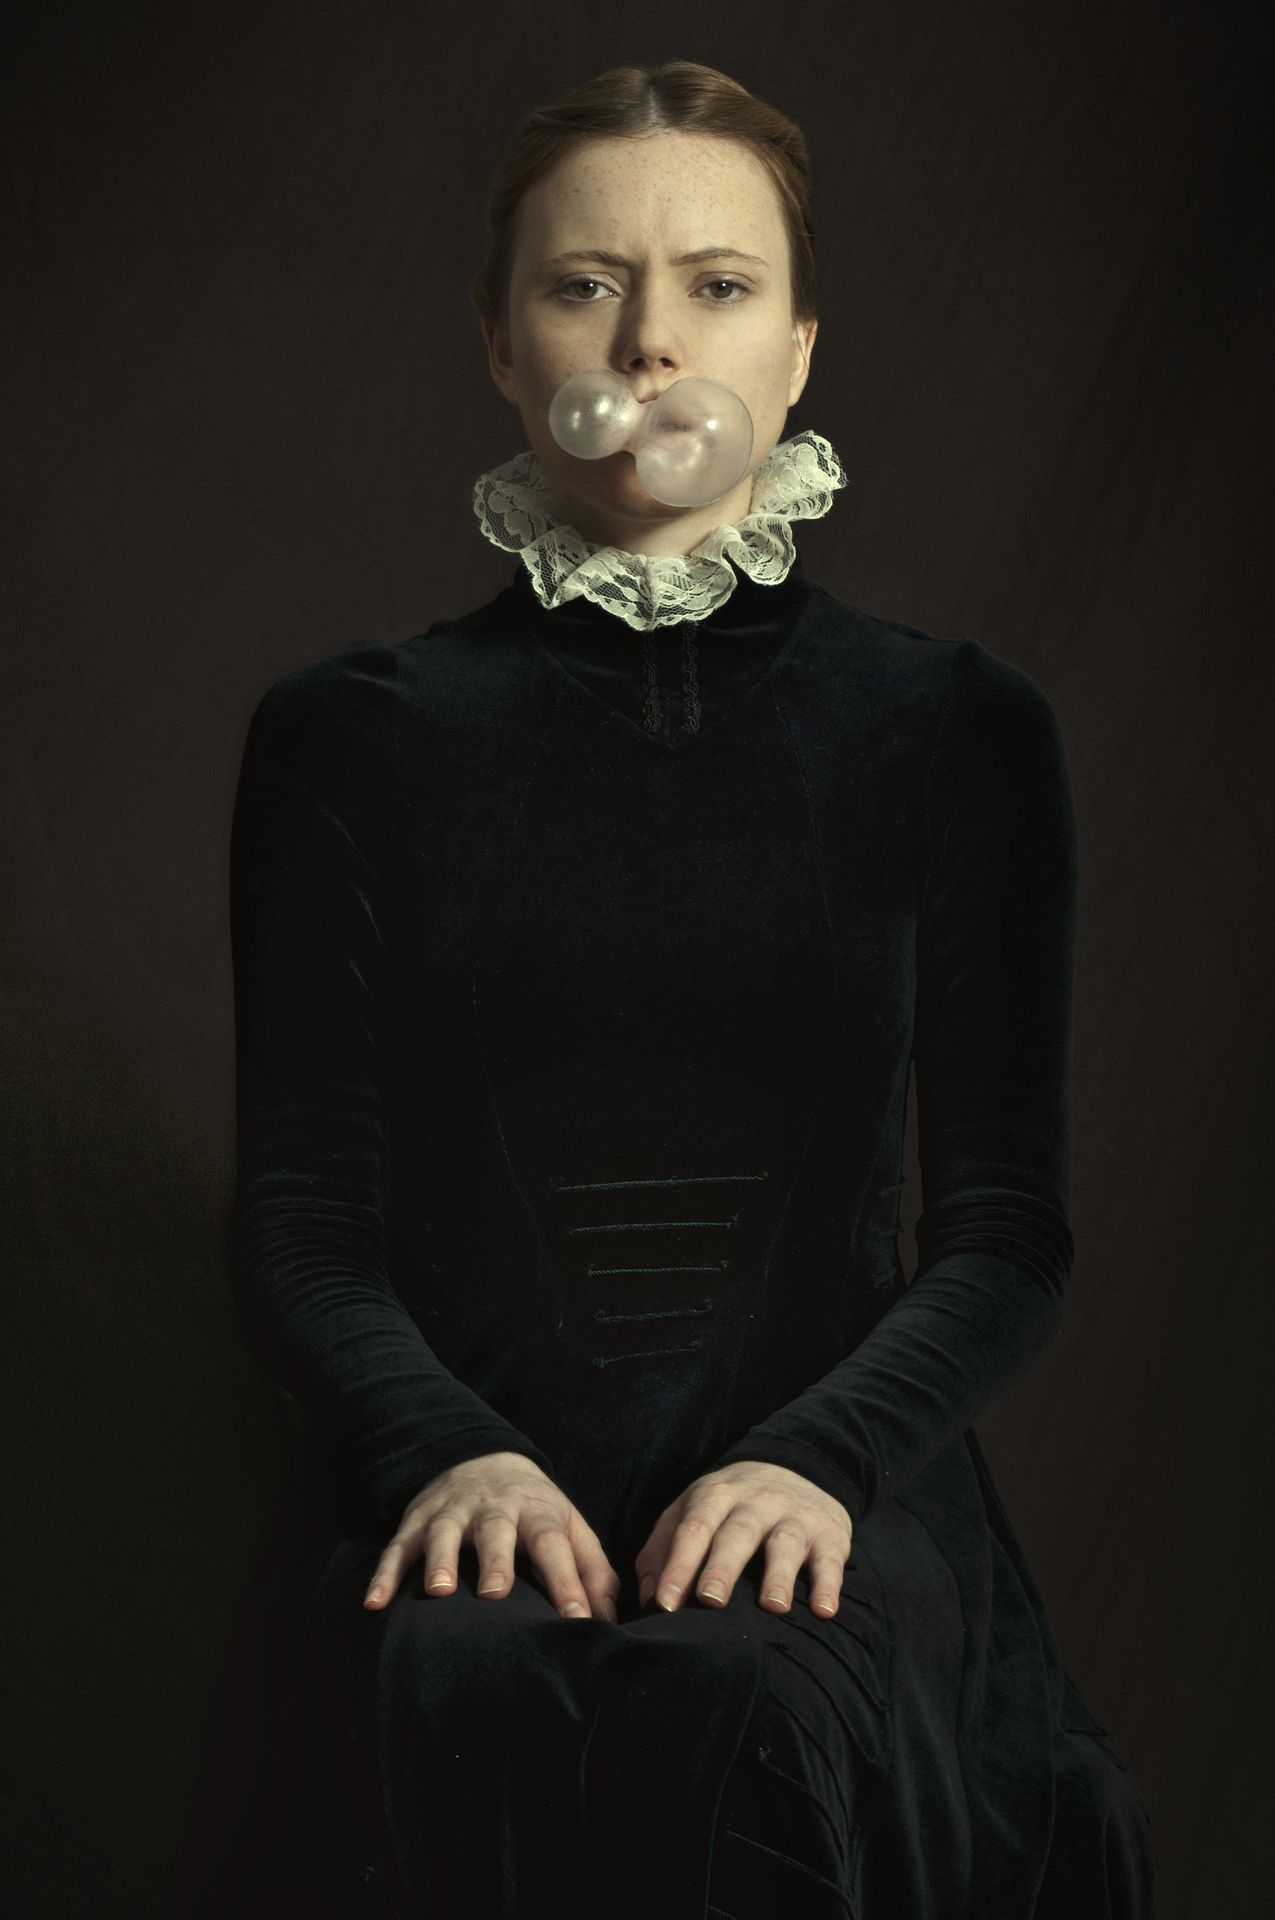 """Saatchi Art Artist: Romina Ressia; Color 2013 Photography """"Double Bubblegum Limited Edition of 8 - only 1 available"""""""